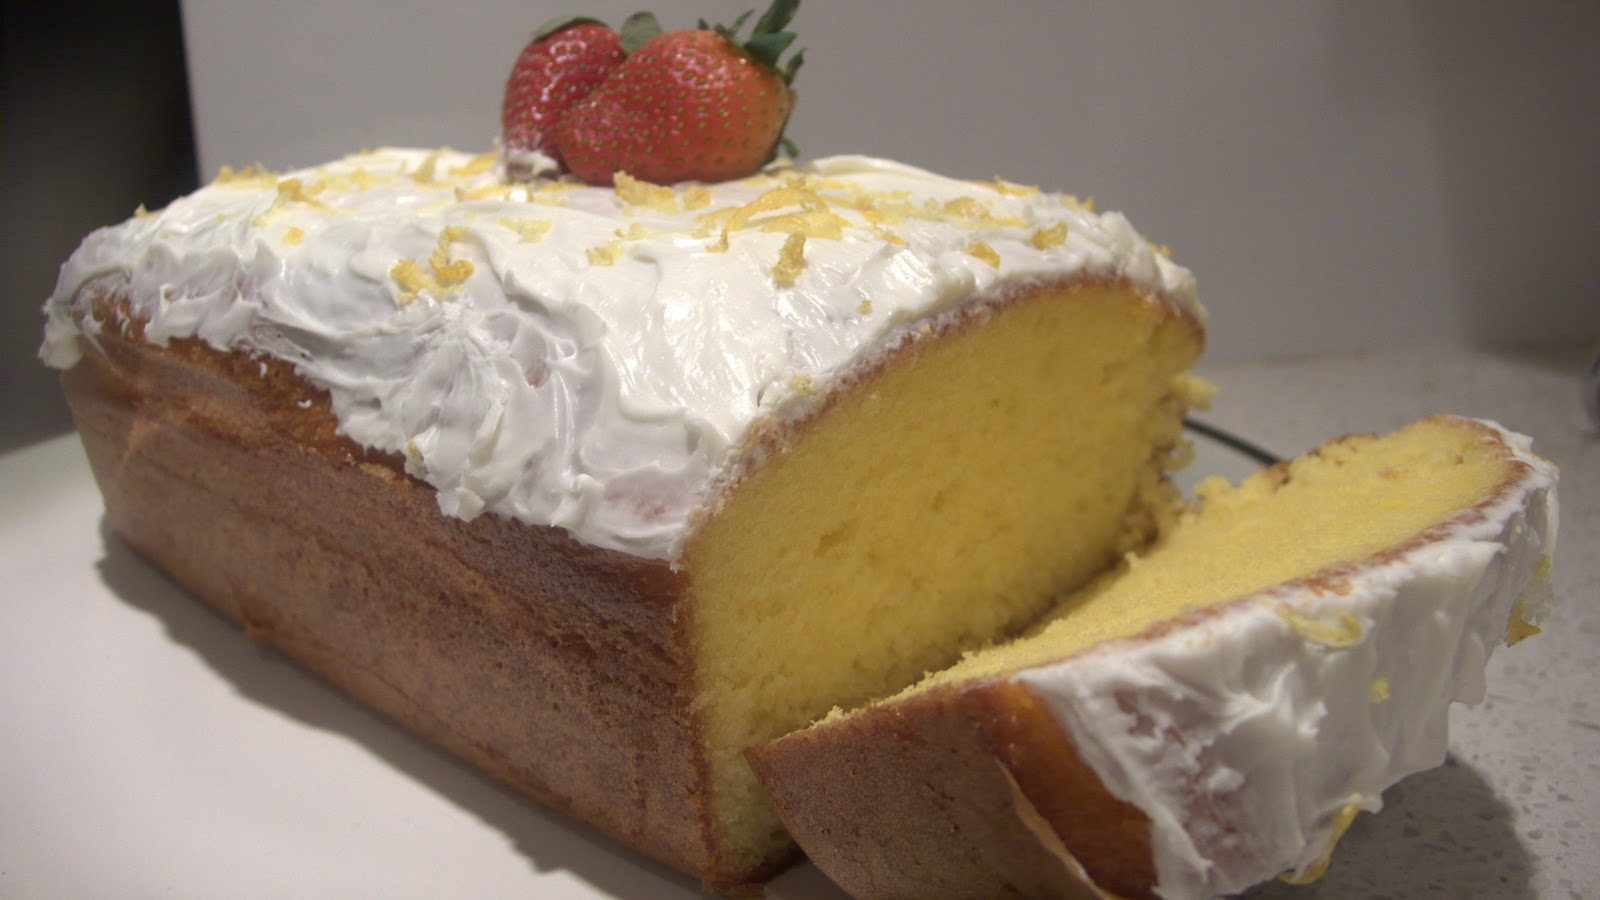 Cake Recipes Using Olive Oil Instead Of Butter